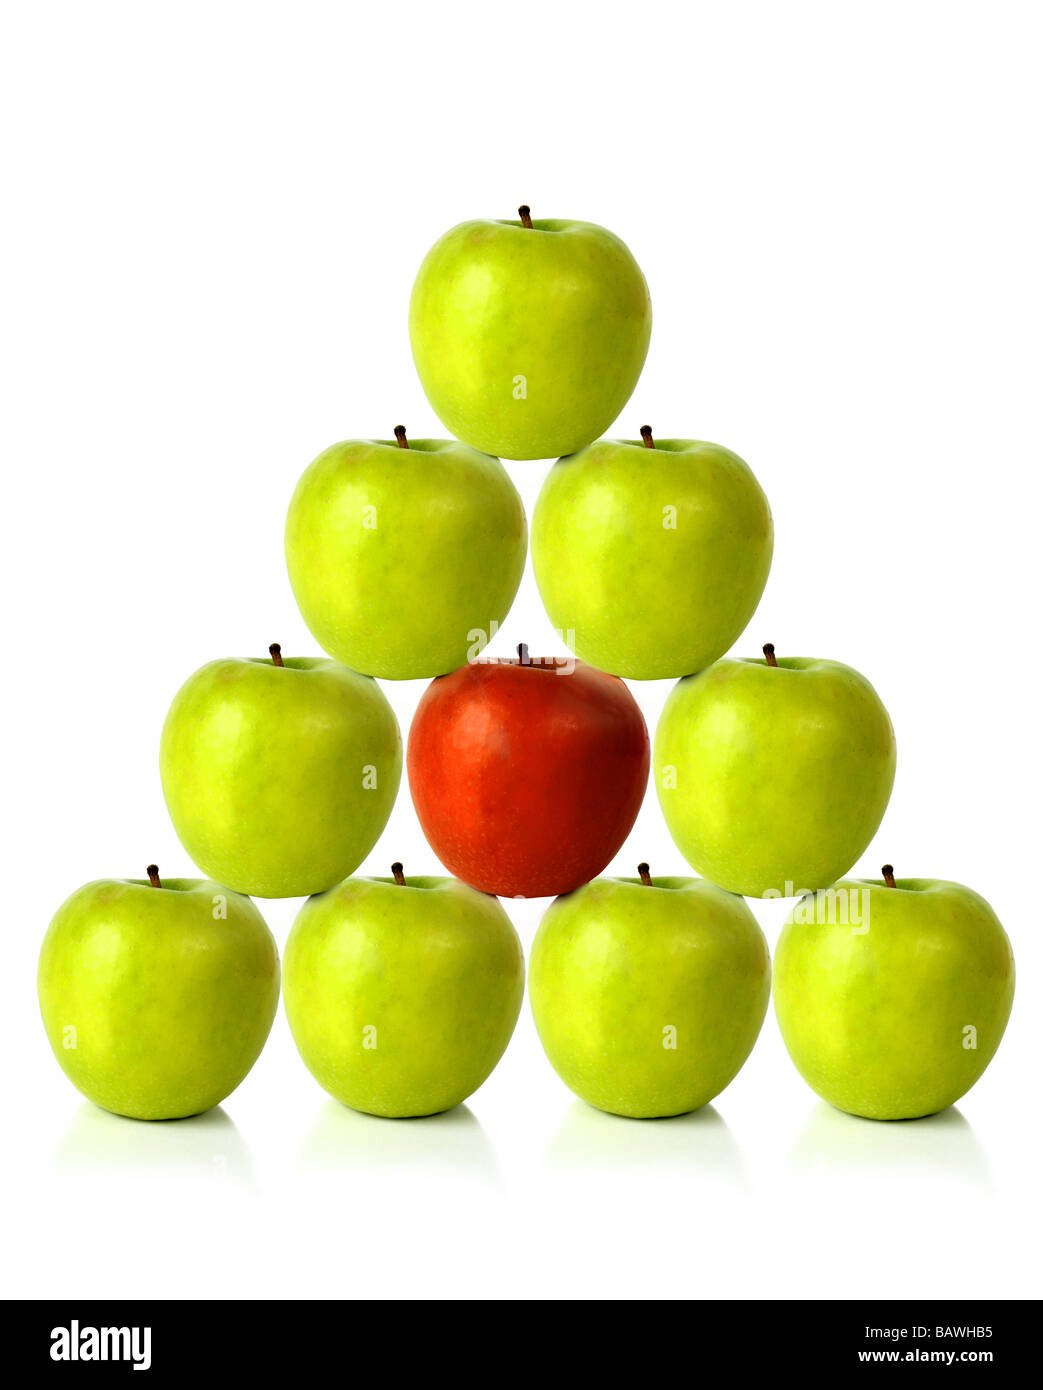 green apples on a pyramid shape - be different Stock Photo